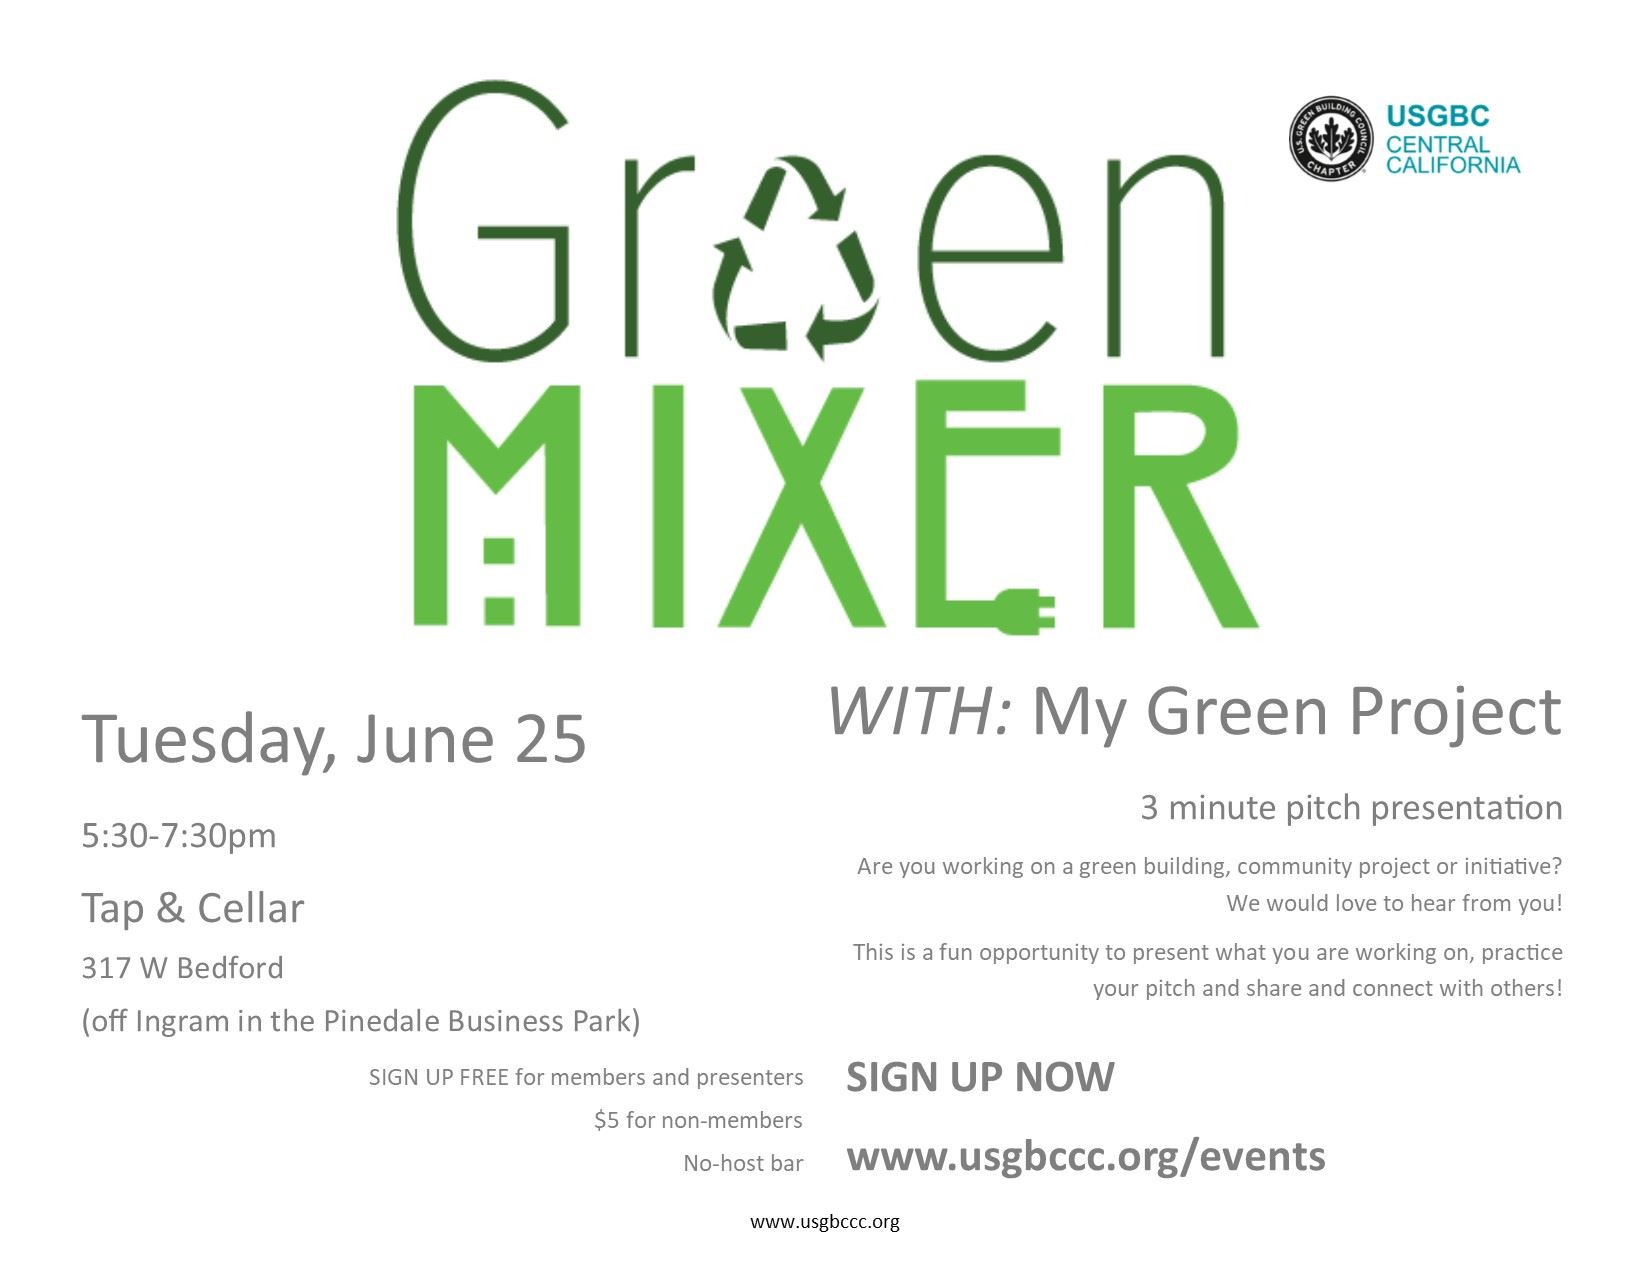 US Green Building Council Central California - Green Mixer